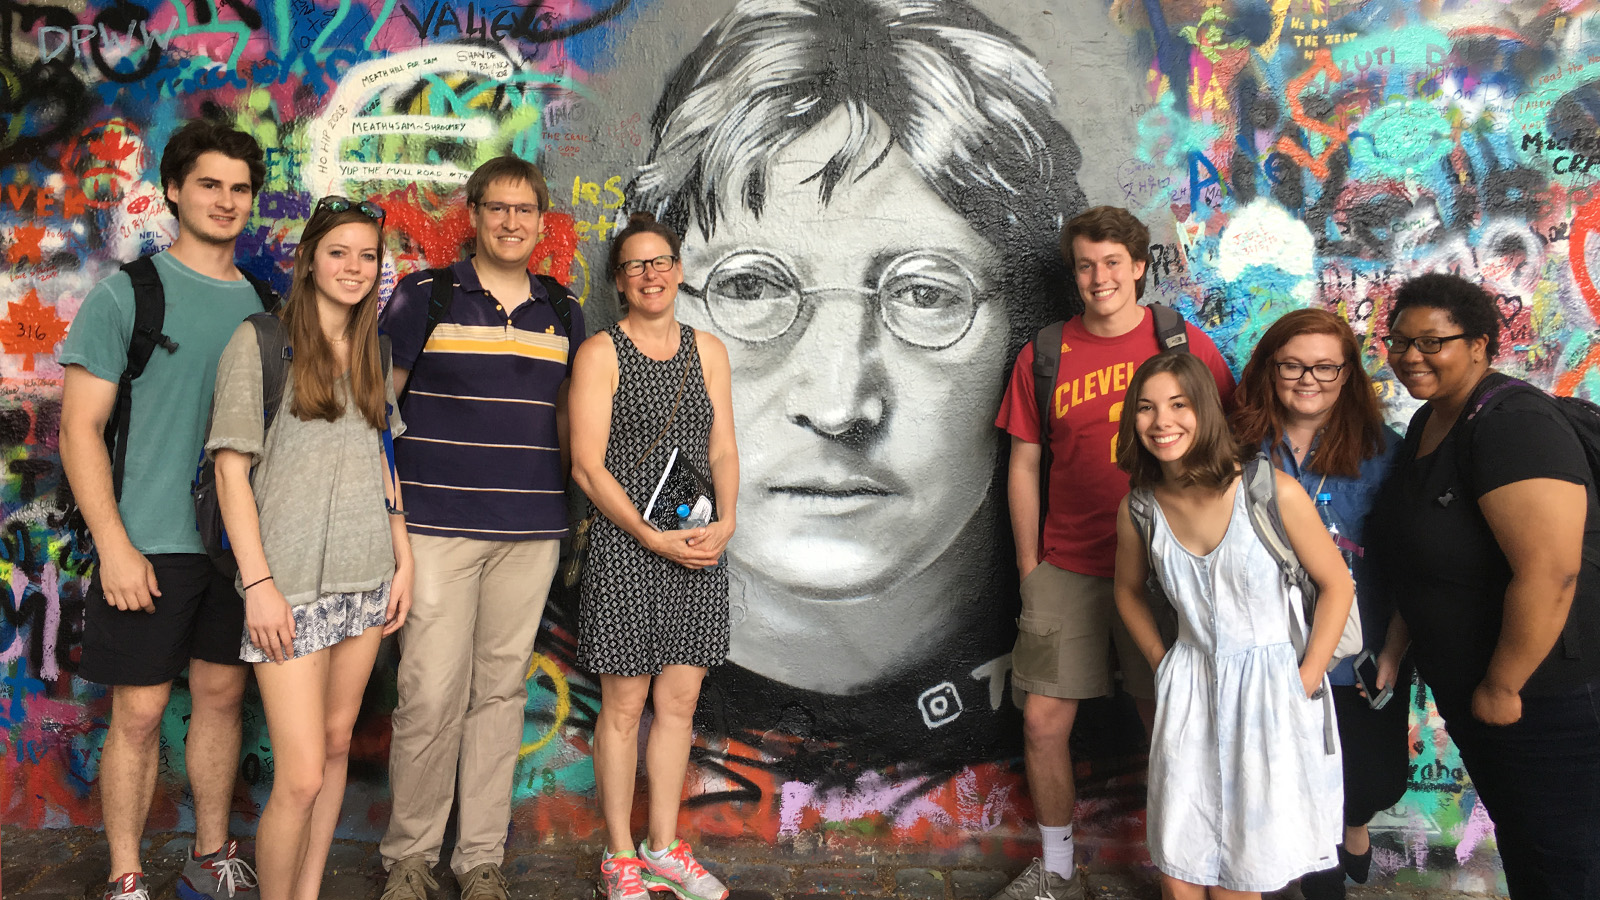 Group photo of NCState sudents gathered in front of a mural in Prague